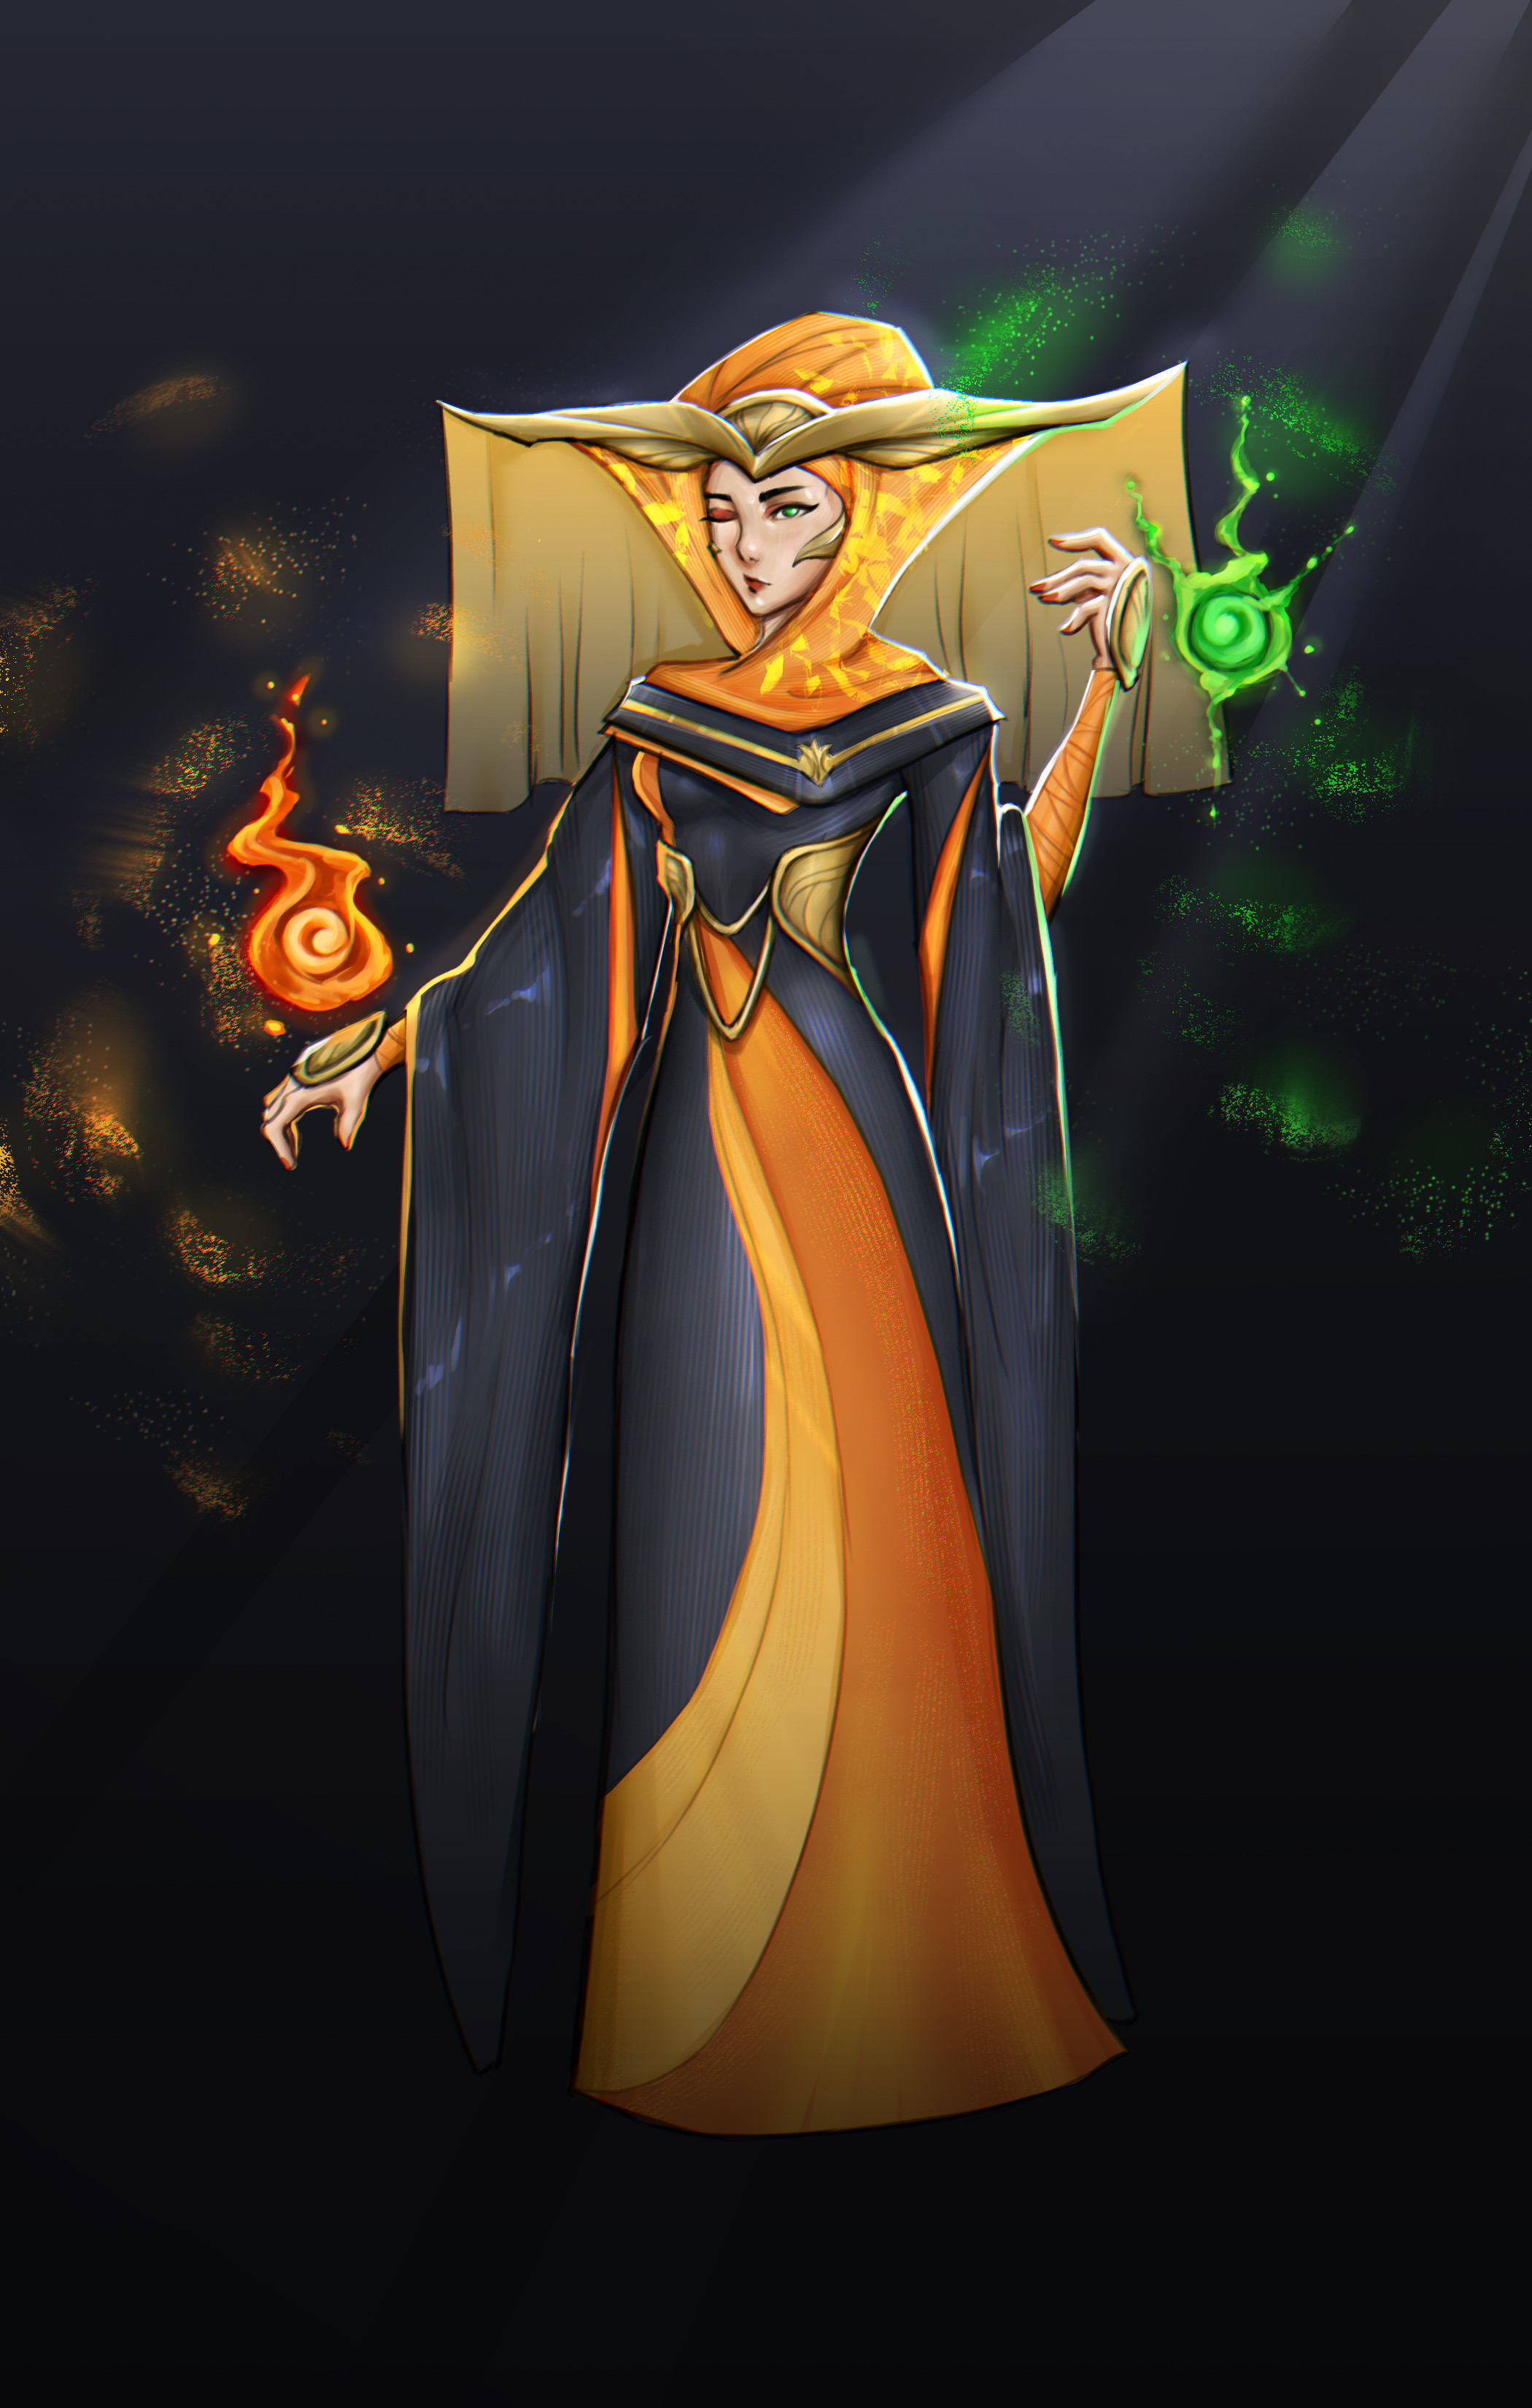 Invoker Araenia [1/3] The high priest/mage who serves as Solara's representative in political meetings occasionally. Ambitious to the point of sacrificing an eye to become a more powerful healer.